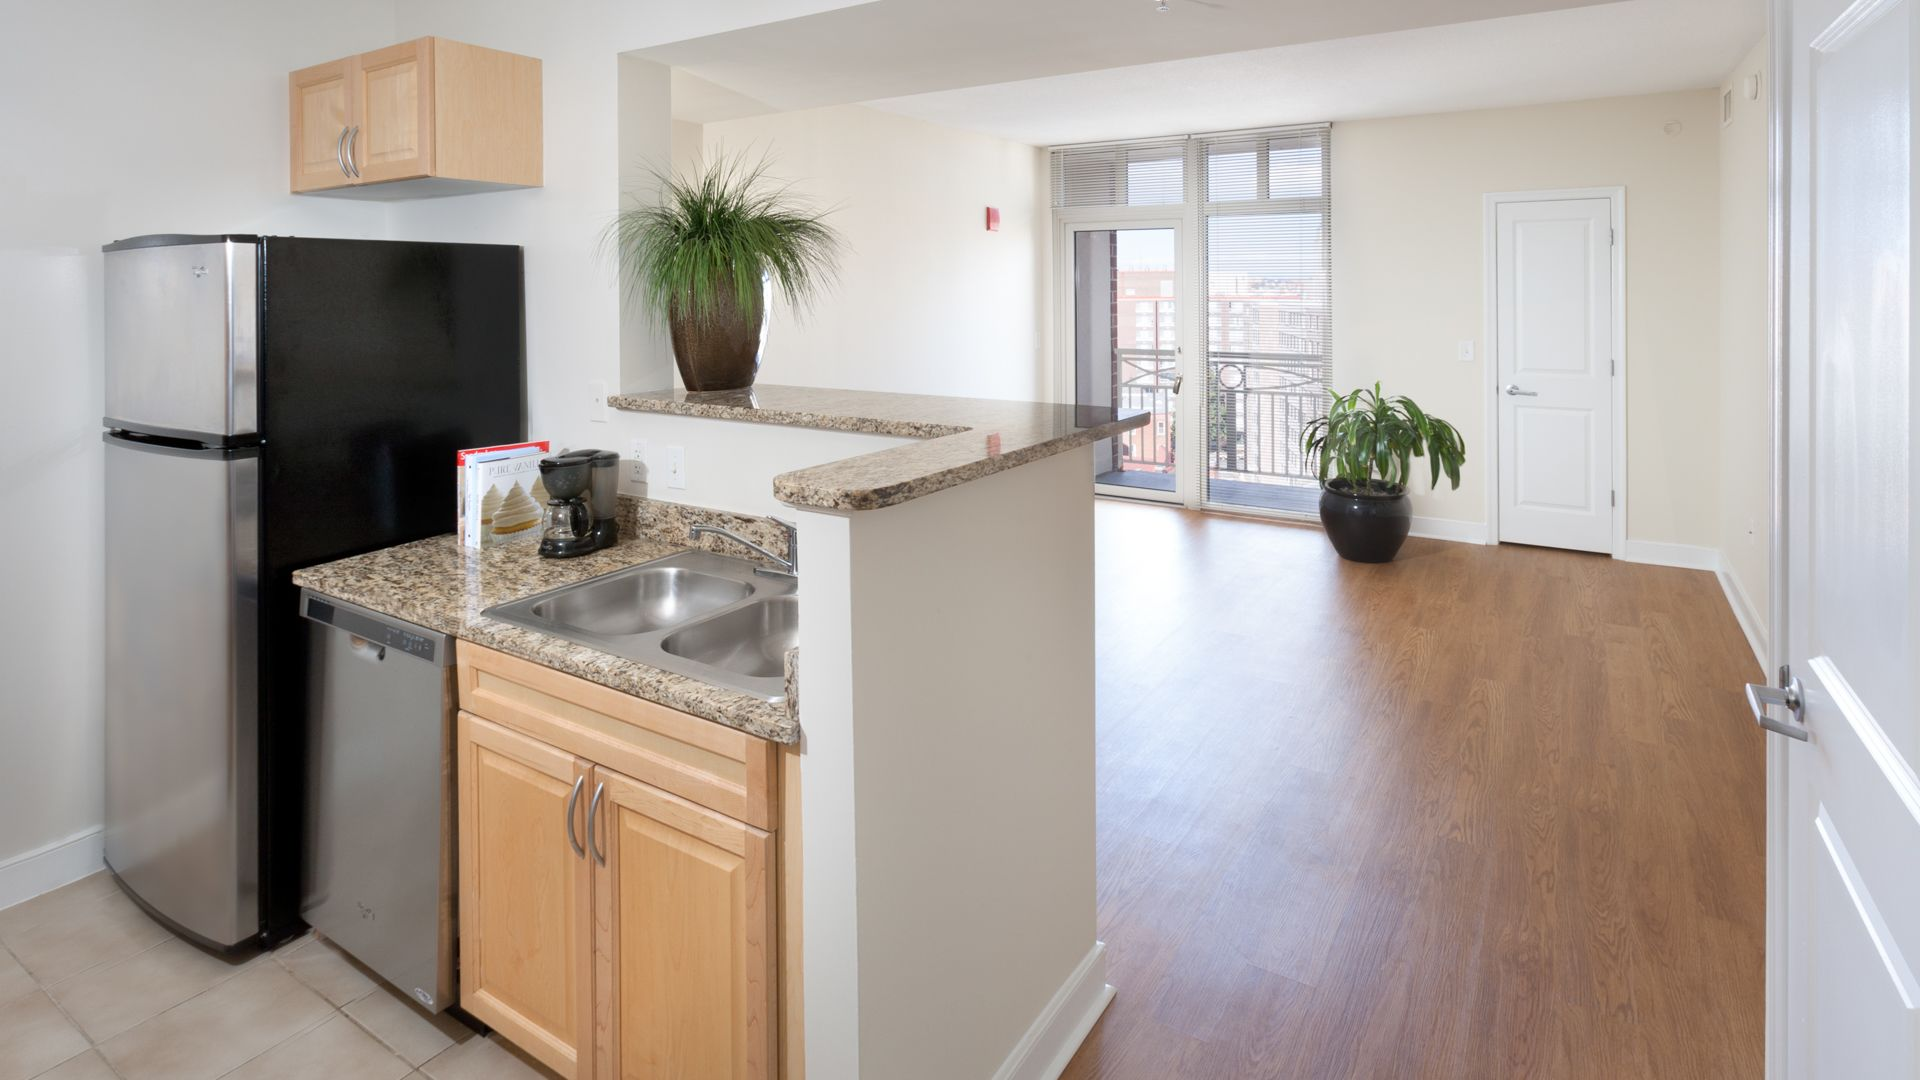 1210 Mass Apartments - Living Room and Kitchen